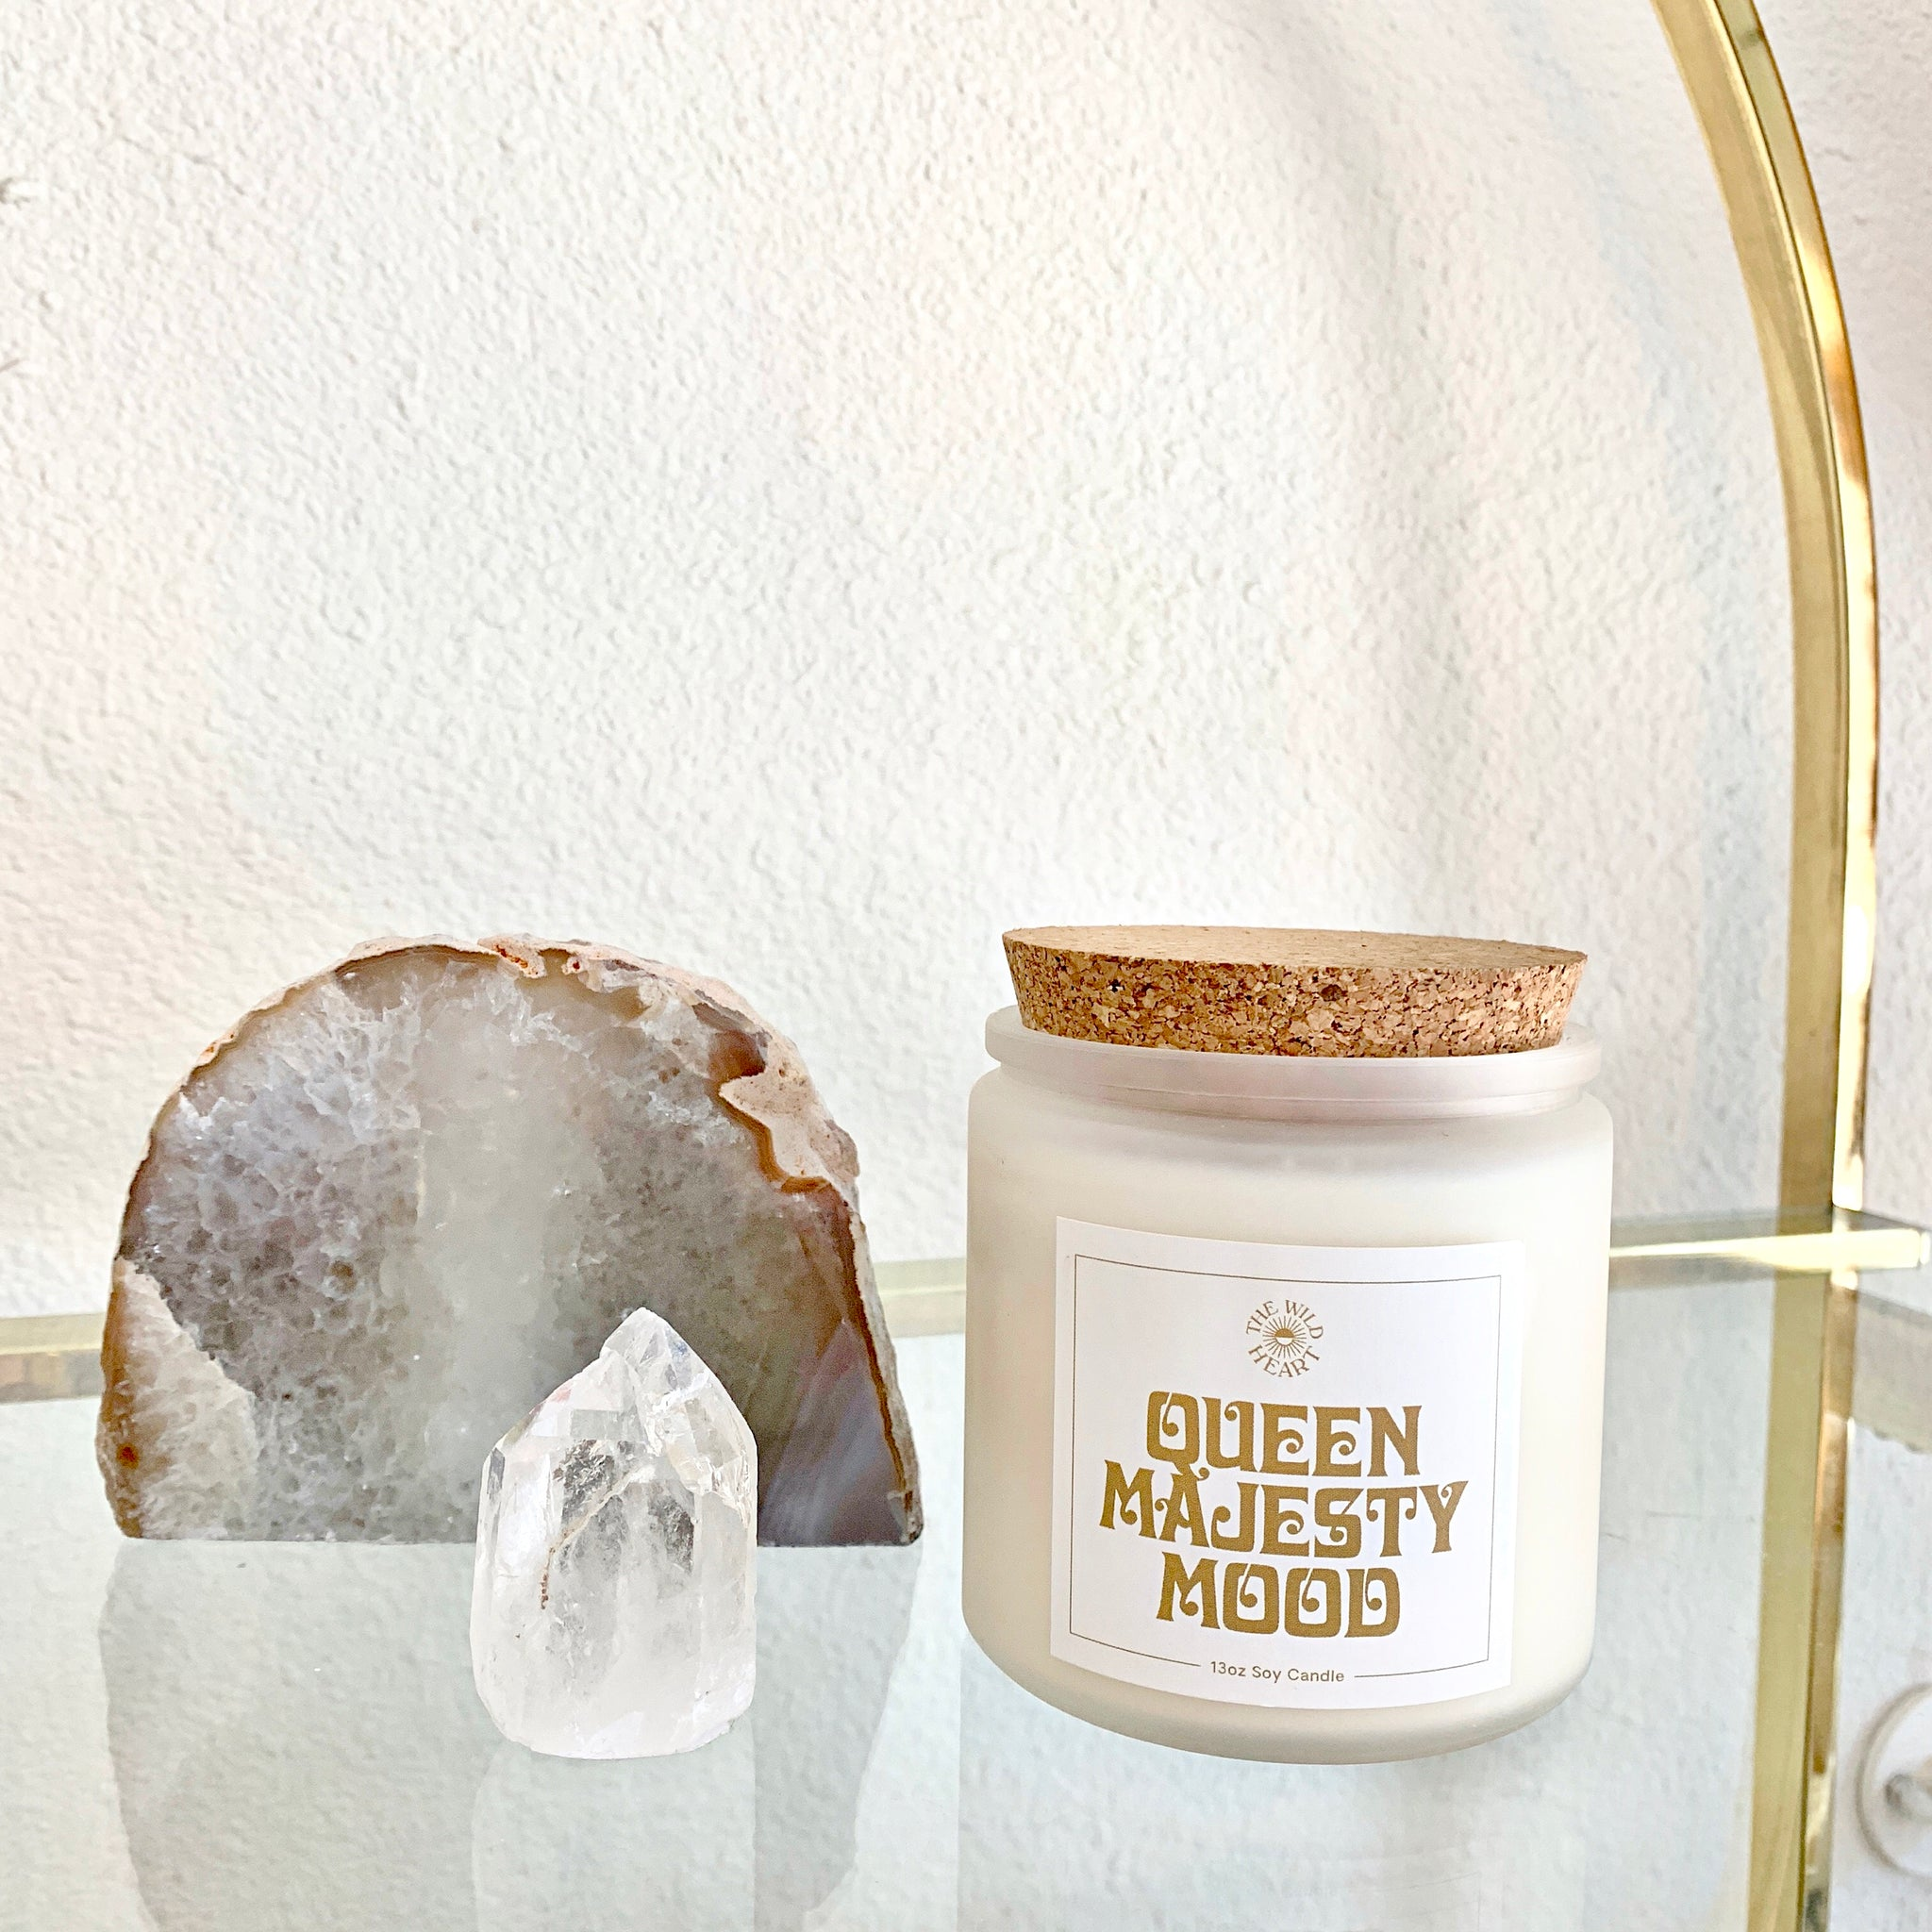 Queen Majesty Mood 13oz candle